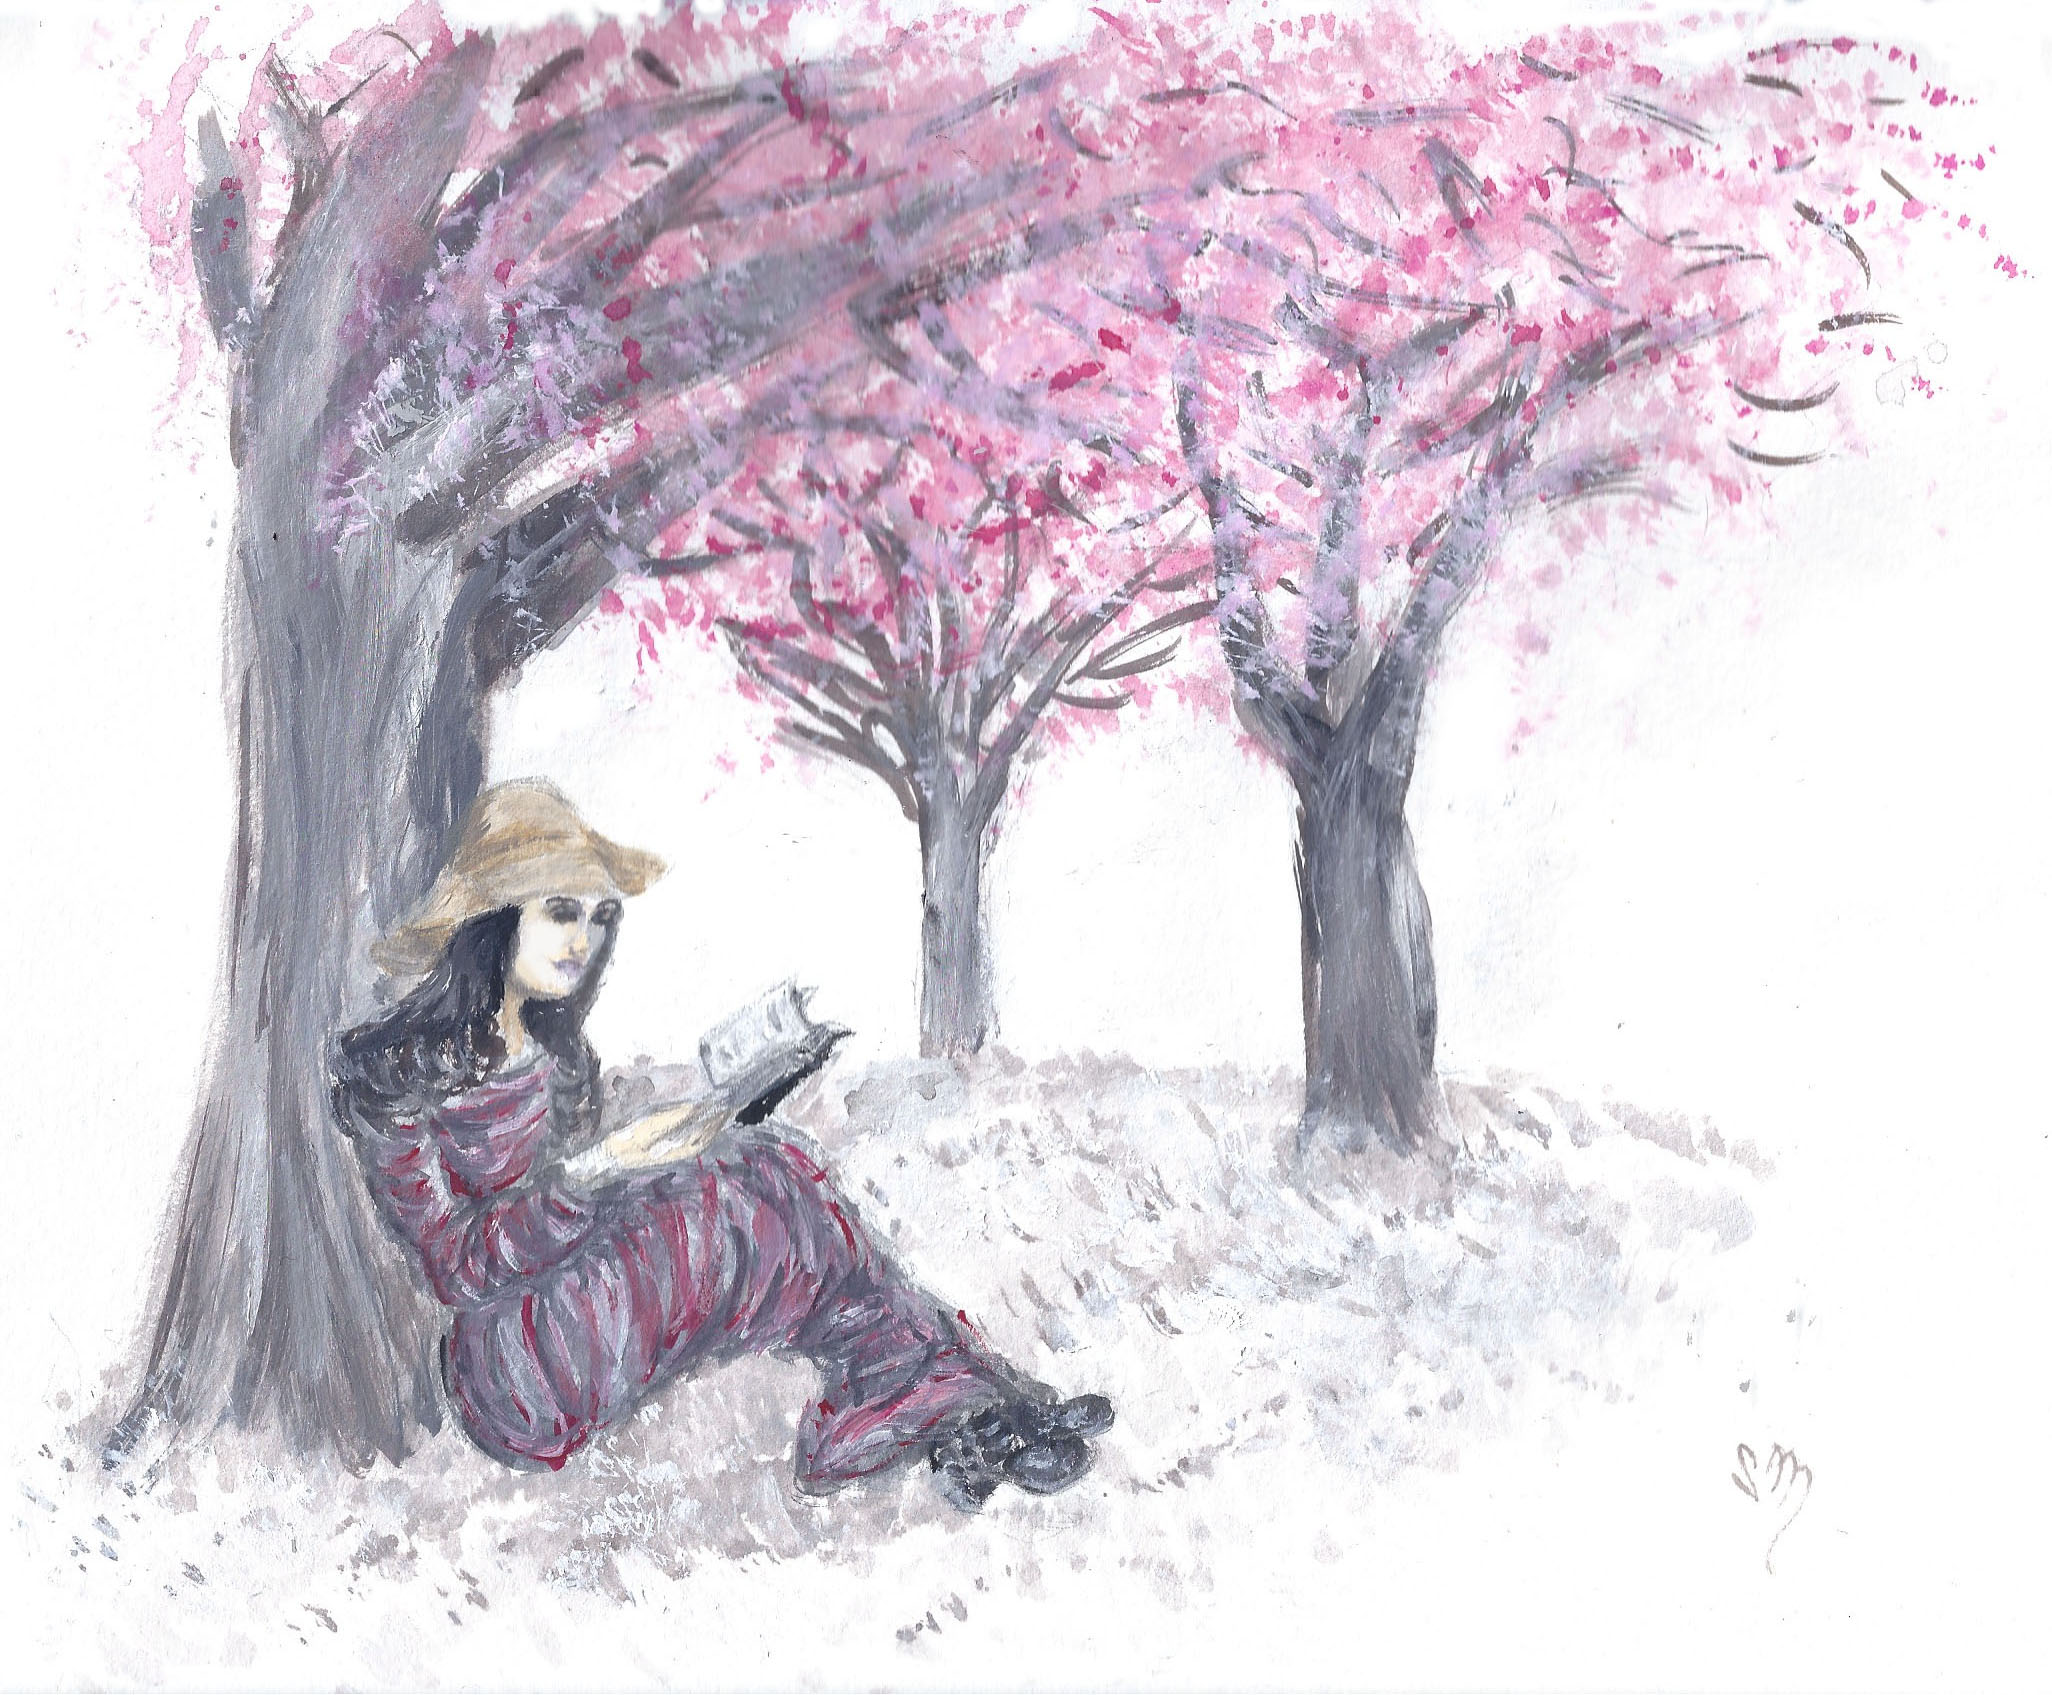 Escape Under the Cherry Blossom Trees